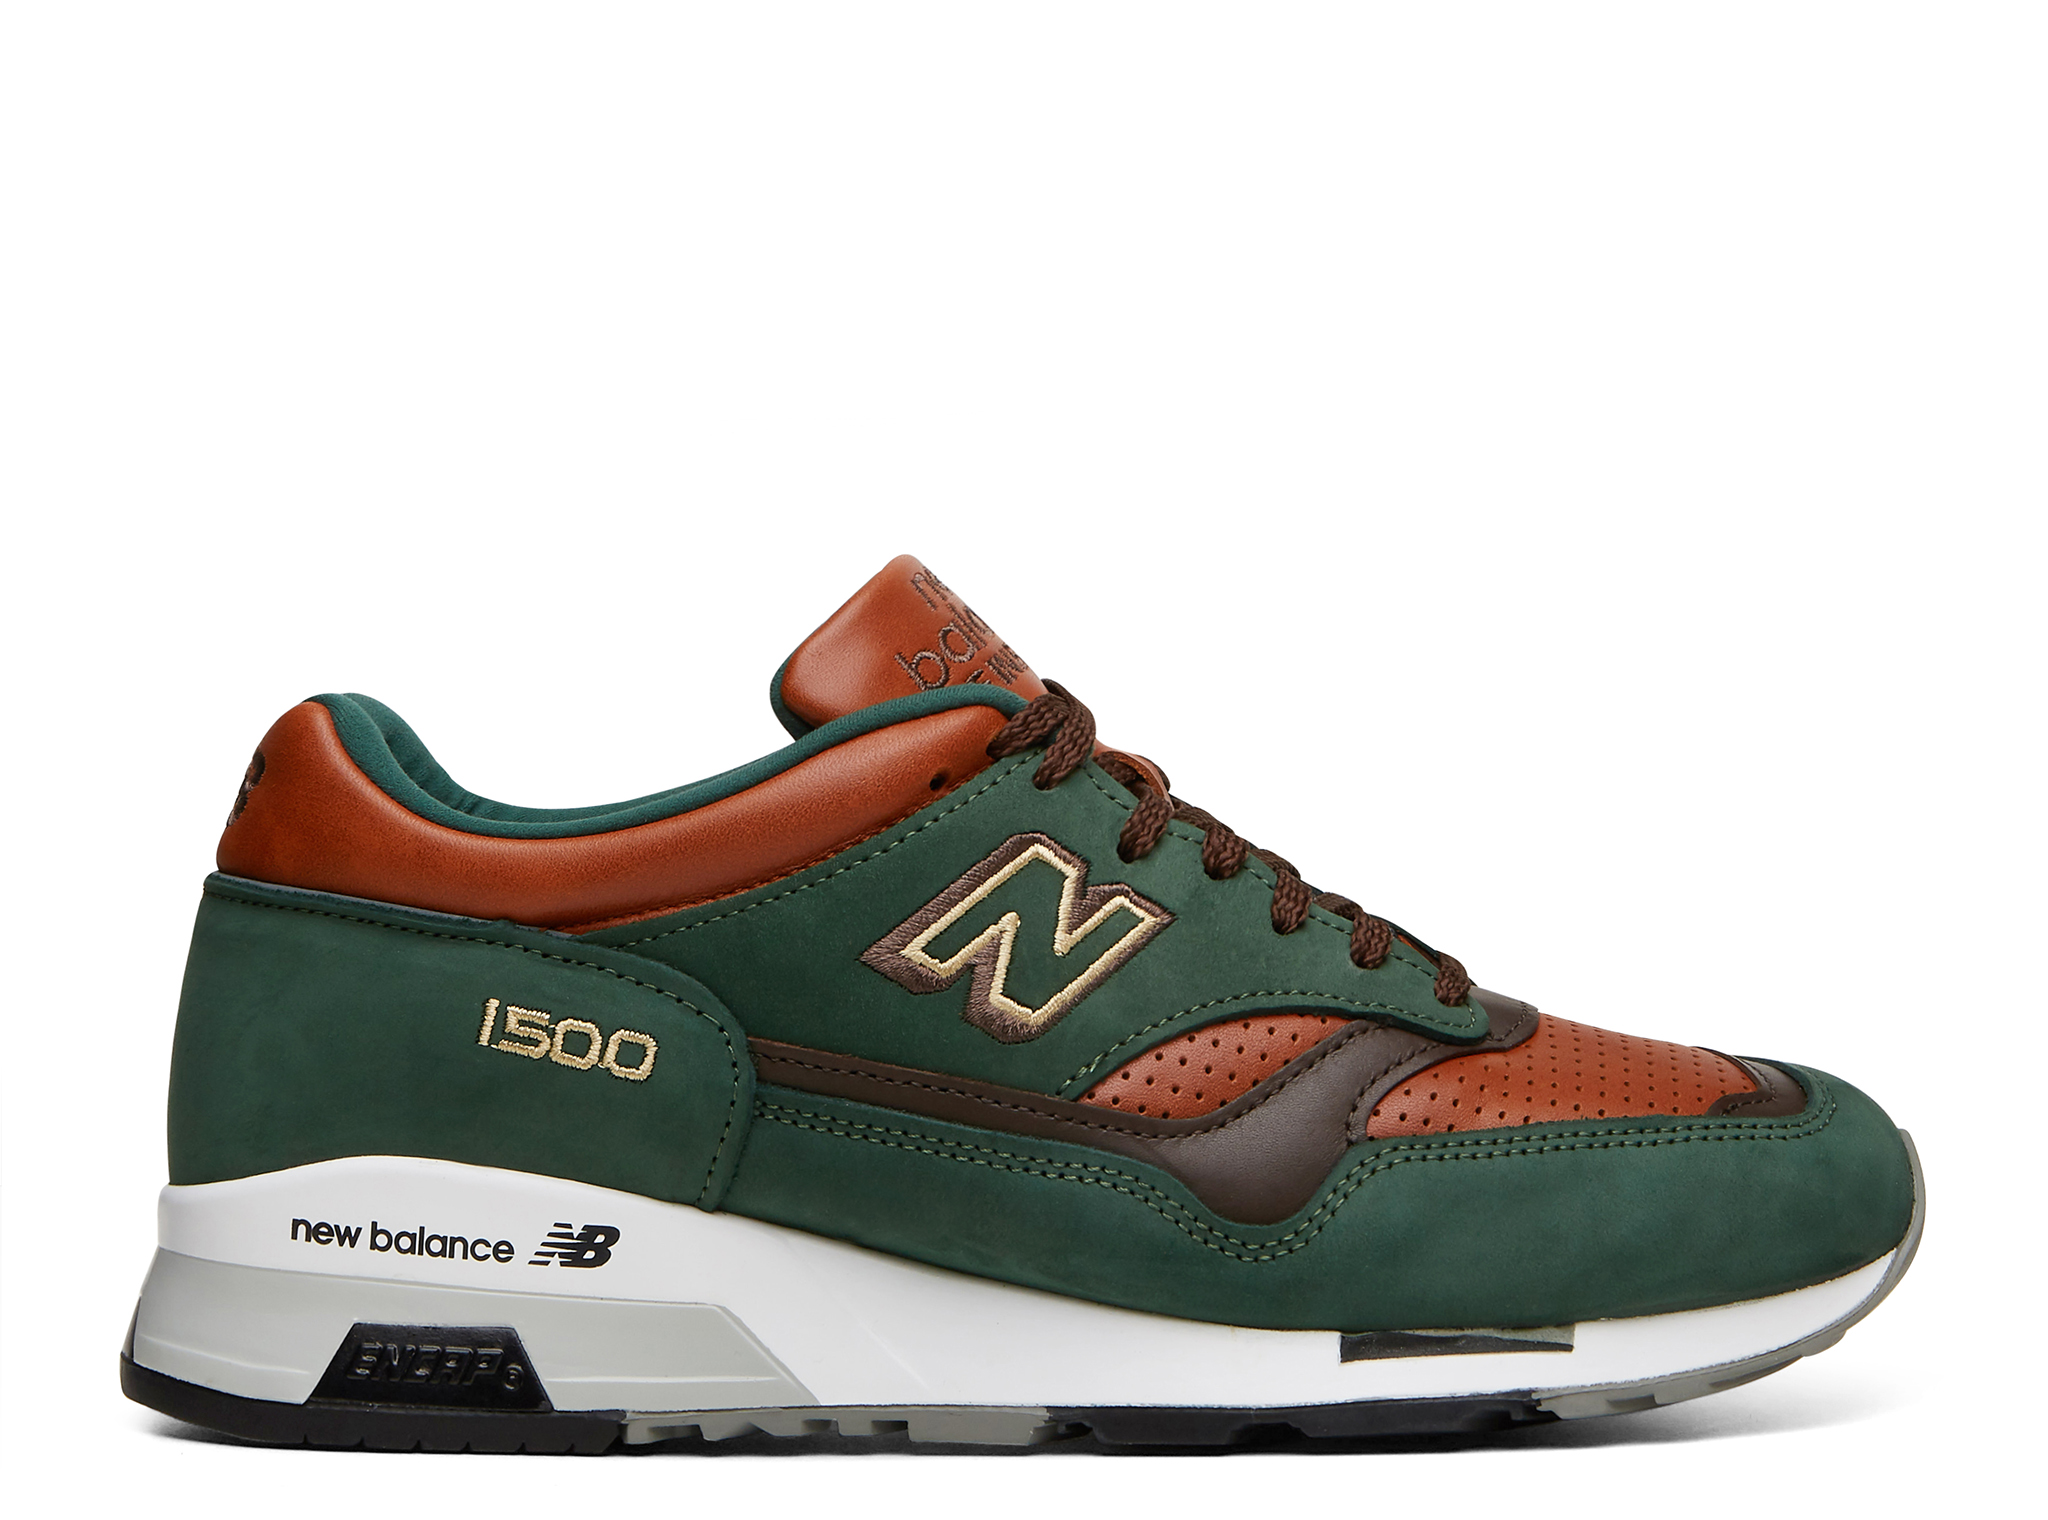 New Balance M1500 Gt by New Balance Sneakers